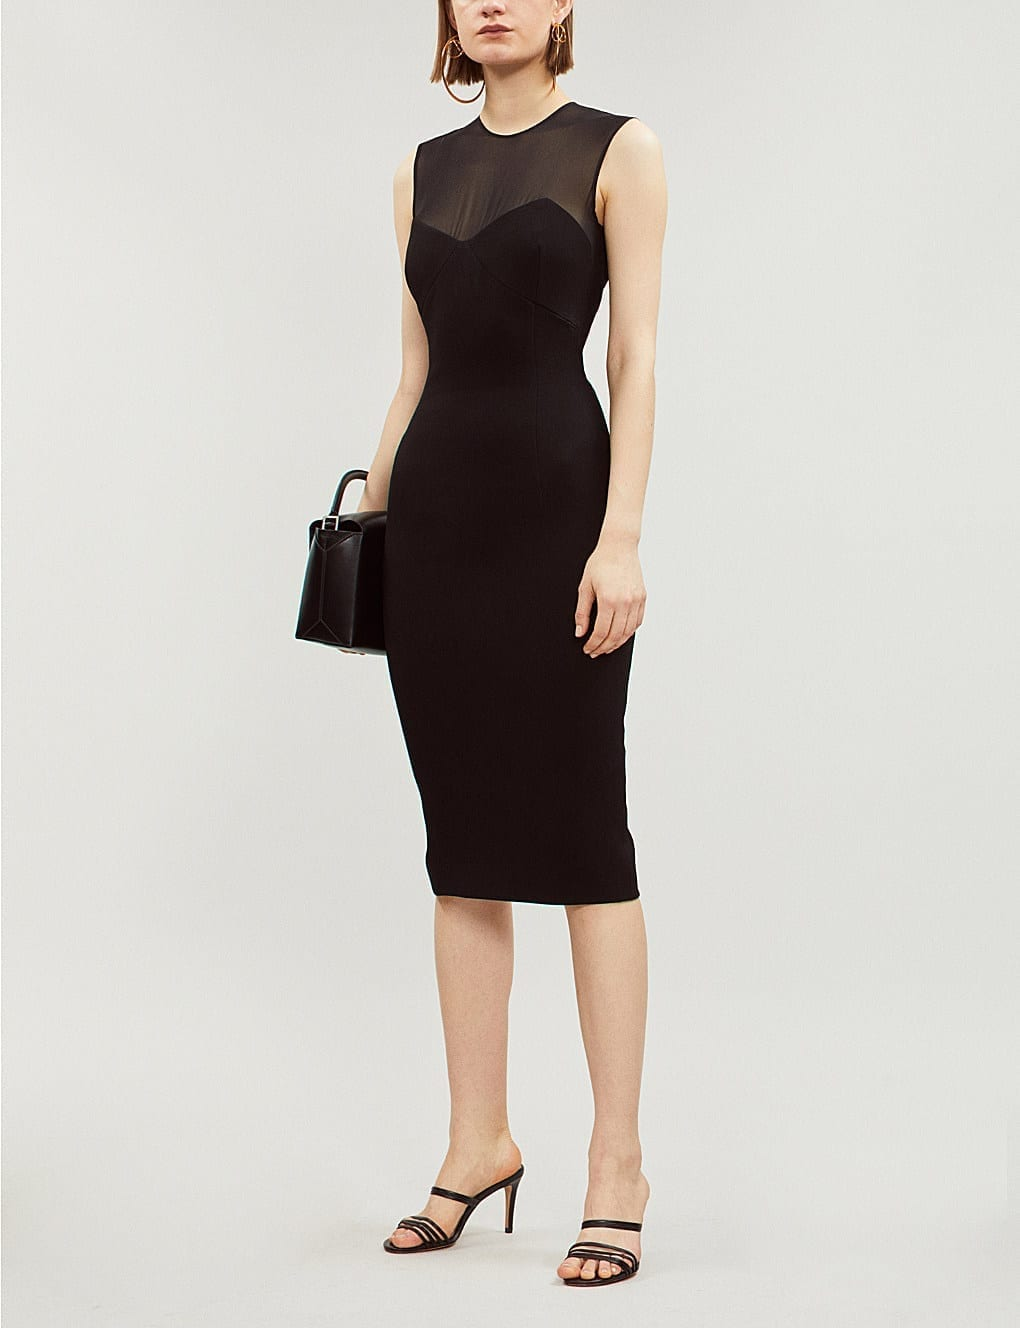 VICTORIA BECKHAM Mesh and Crepe Knee-Length Black Dress